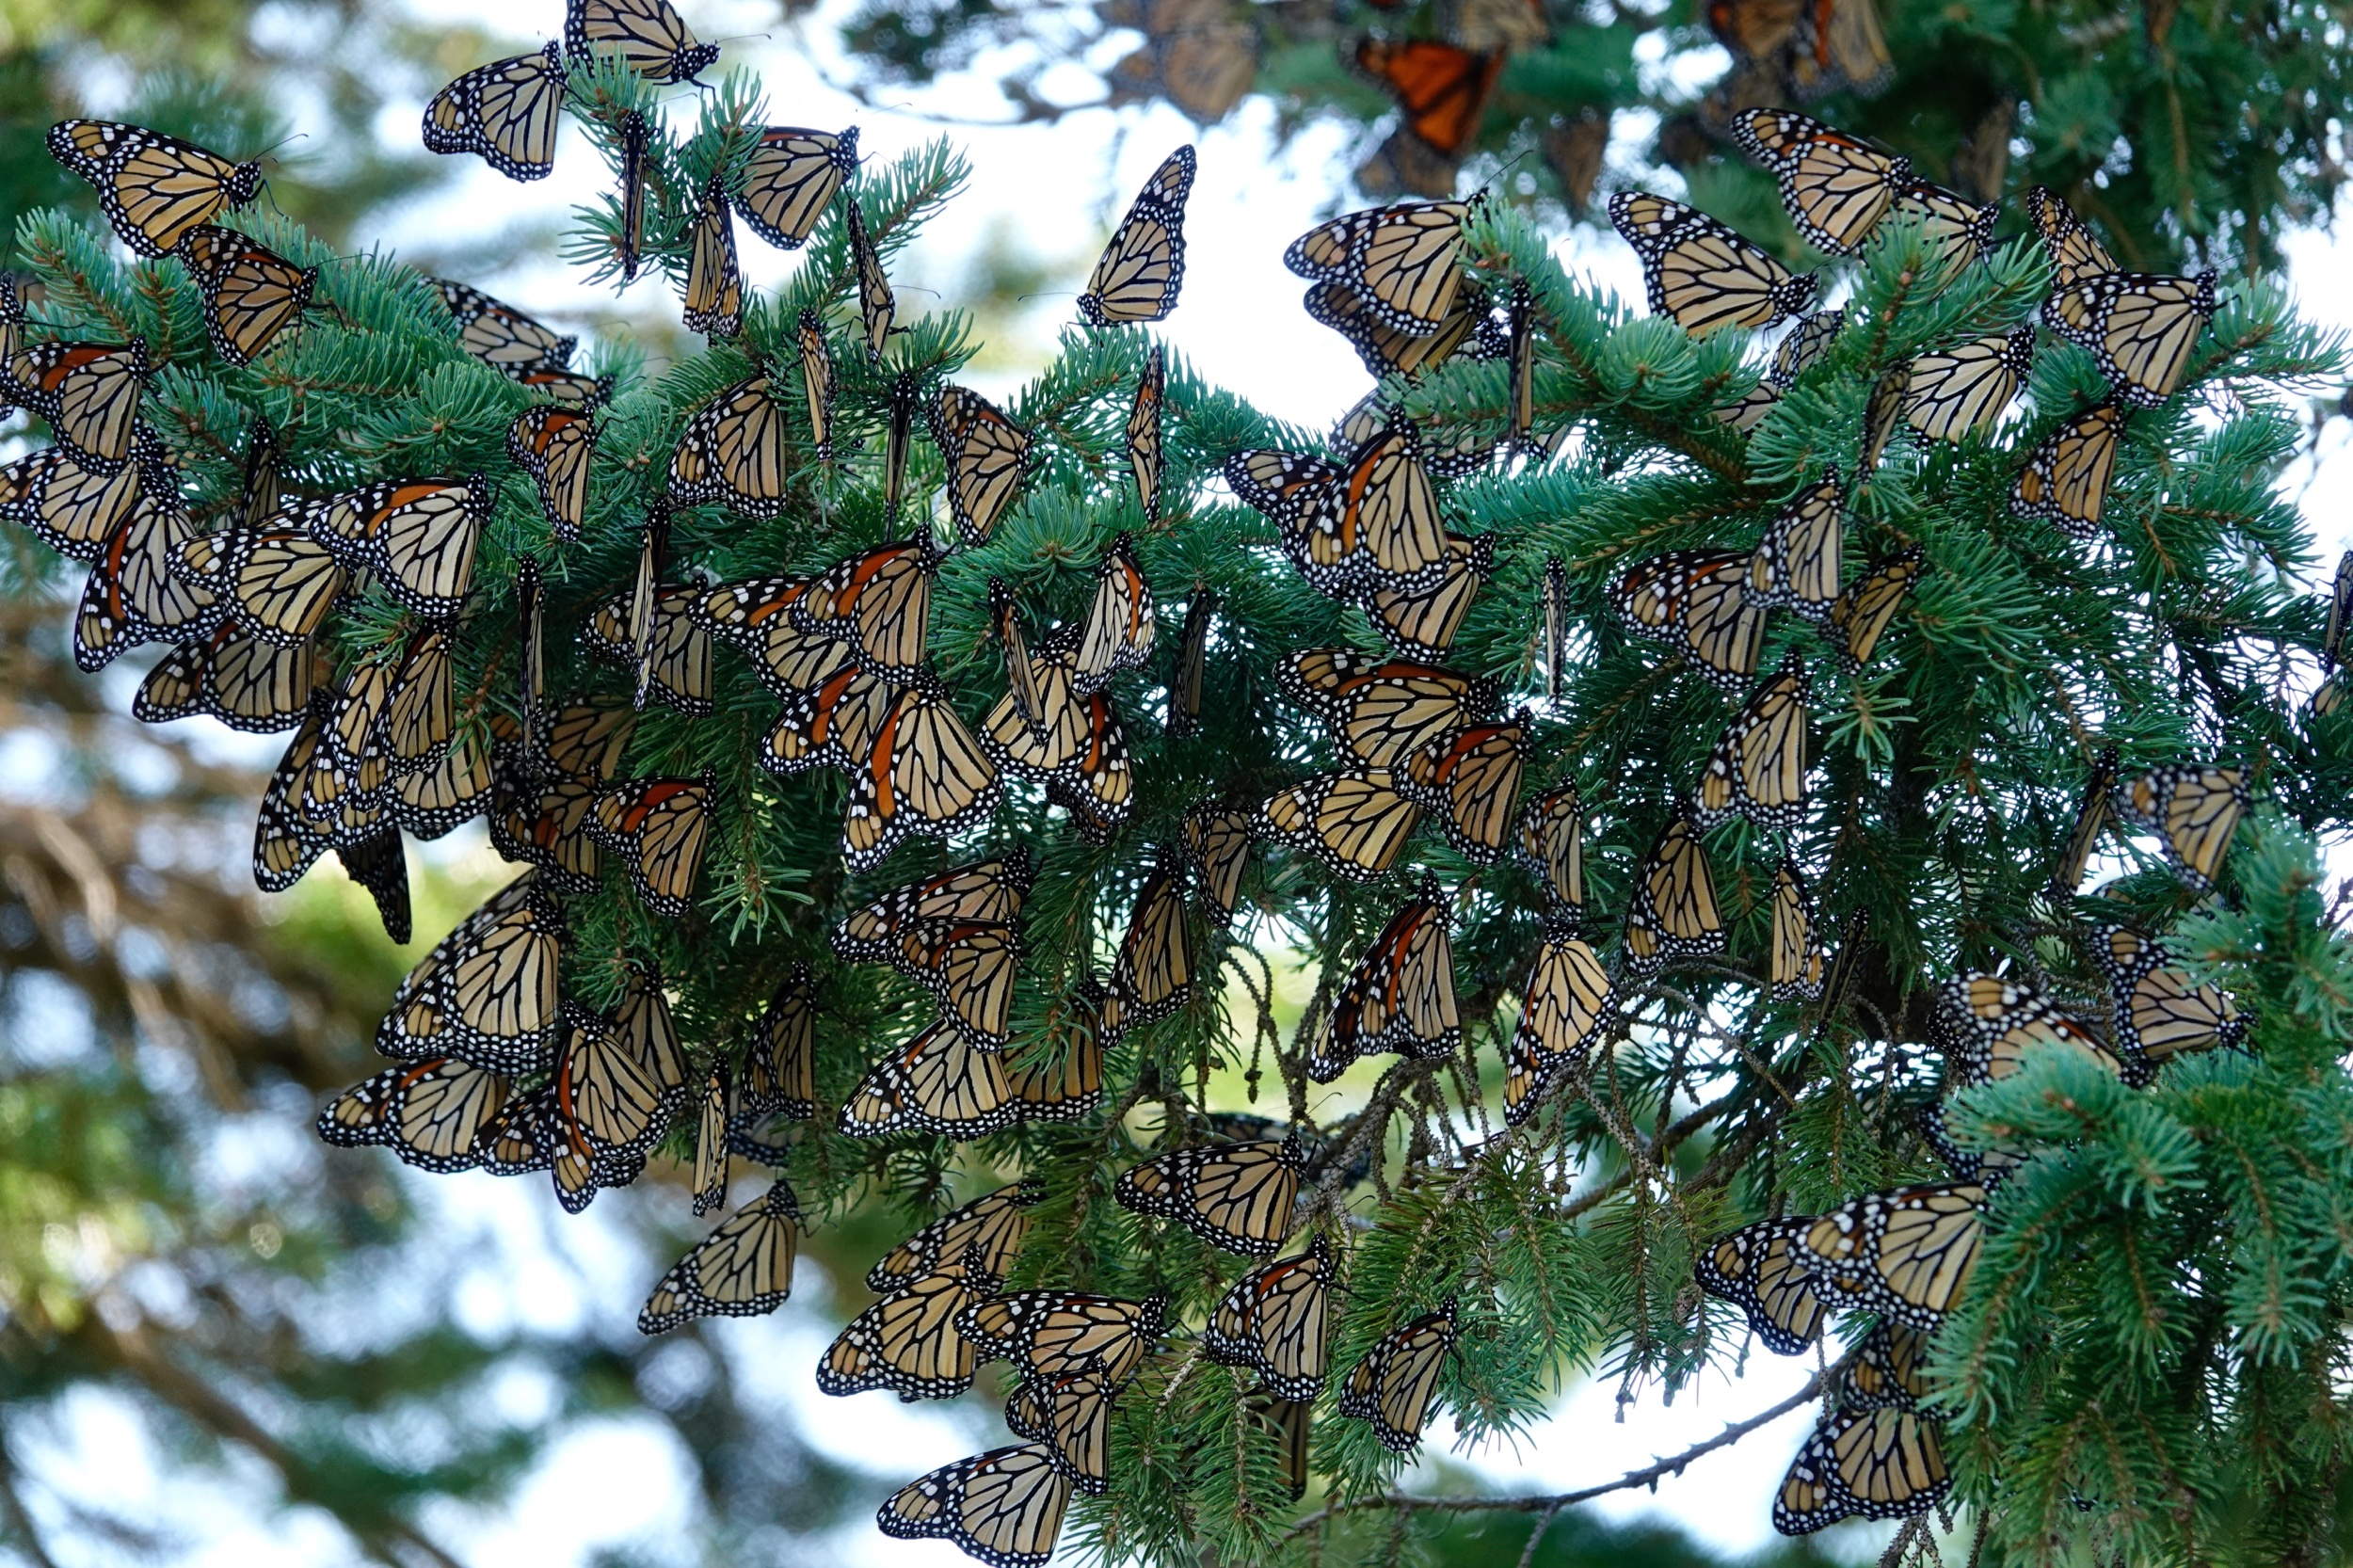 AL BATT/BLUFF COUNTRY READER A tip of the hat to Dustin Demmer for pointing out this monarch butterfly roost.